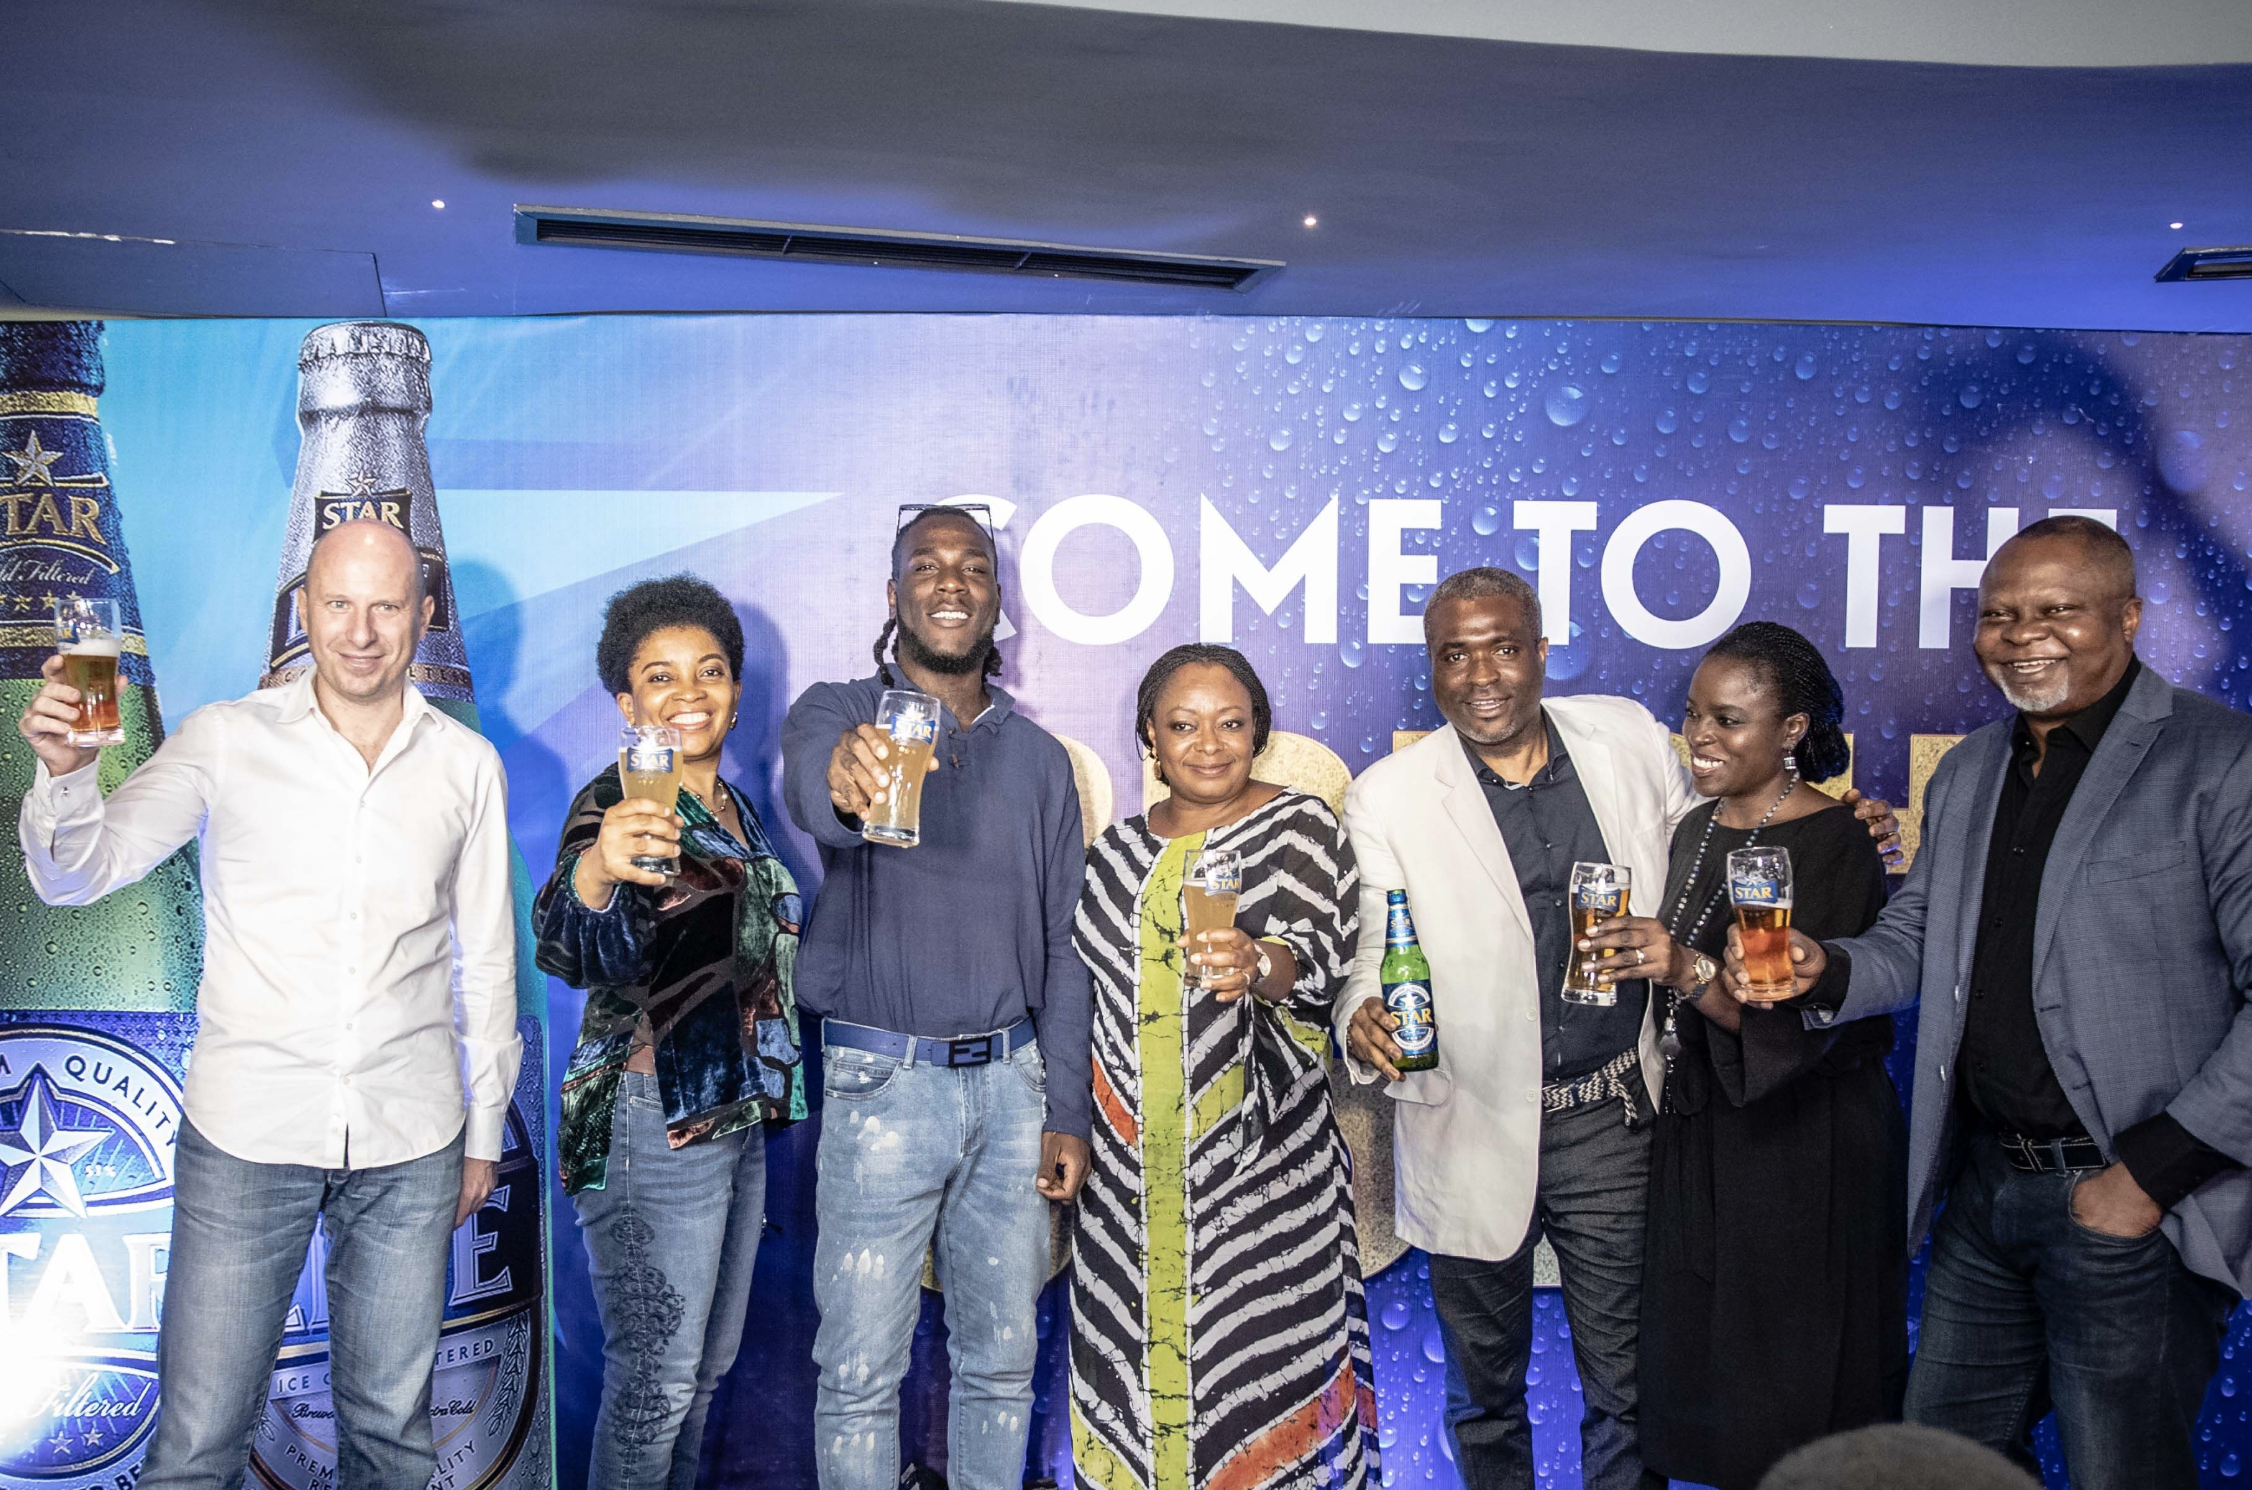 Burna Boy Joins The Brighter Side, As He is Unveiled as Star Brand Ambassador